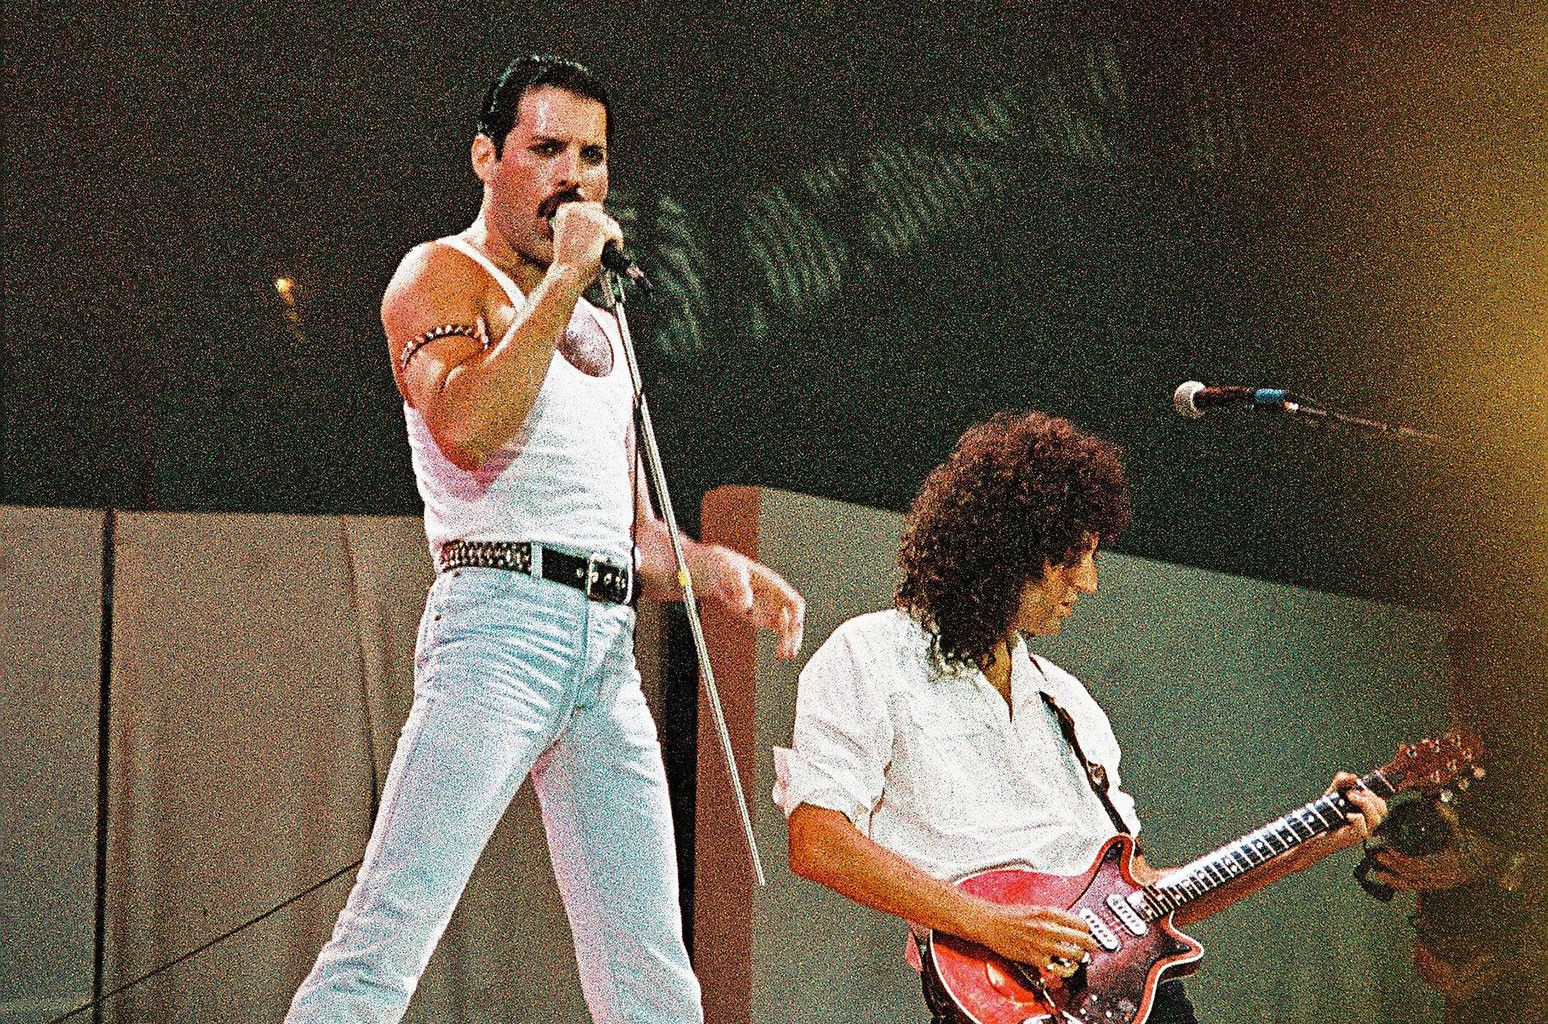 Queen's 'Greatest Hits' Set to be Crowned Again on U.K. Albums Chart